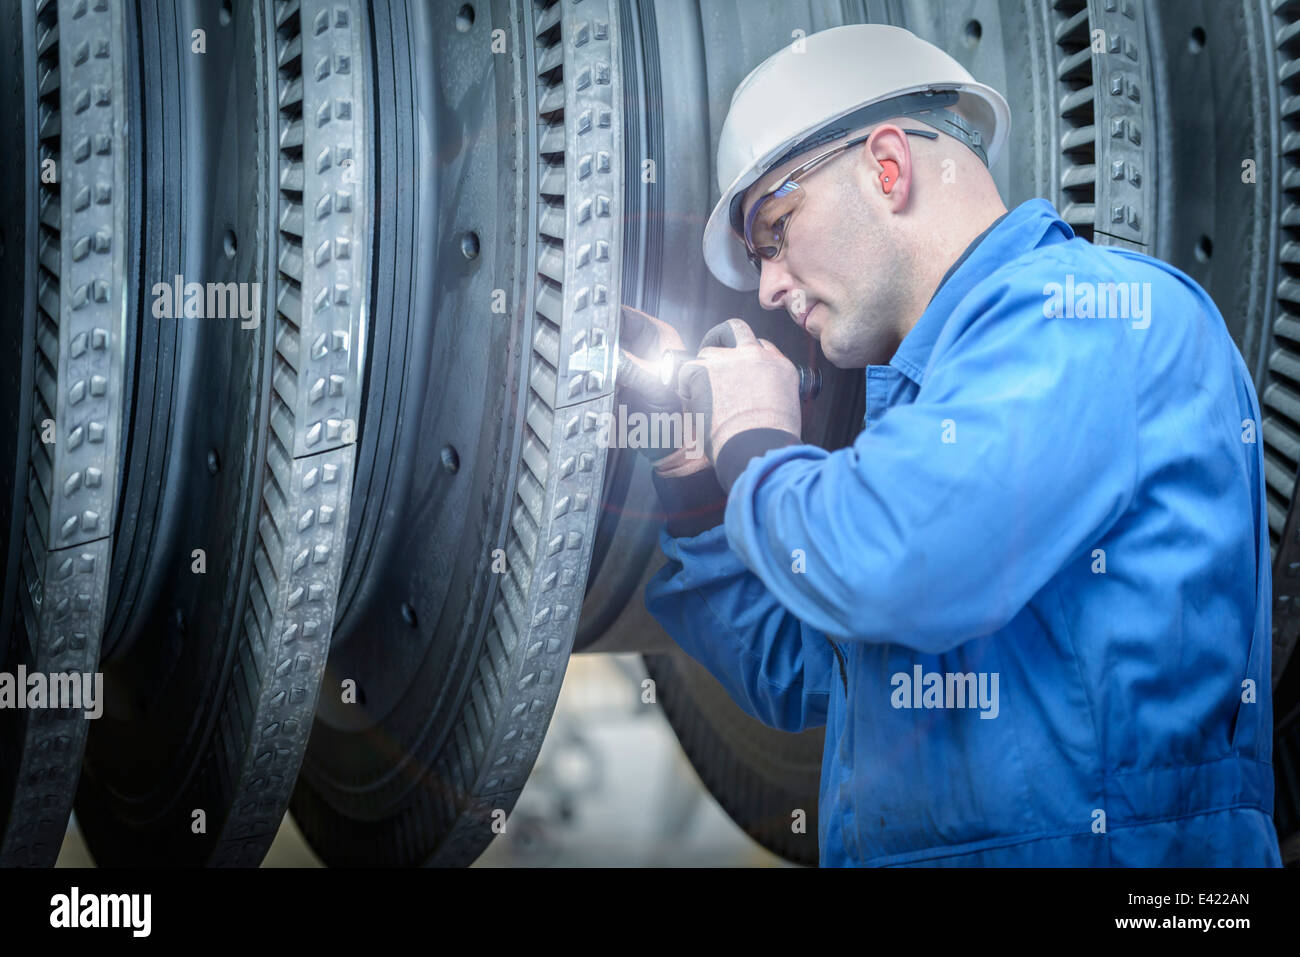 Engineer with torch inspecting turbine during power station outage - Stock Image